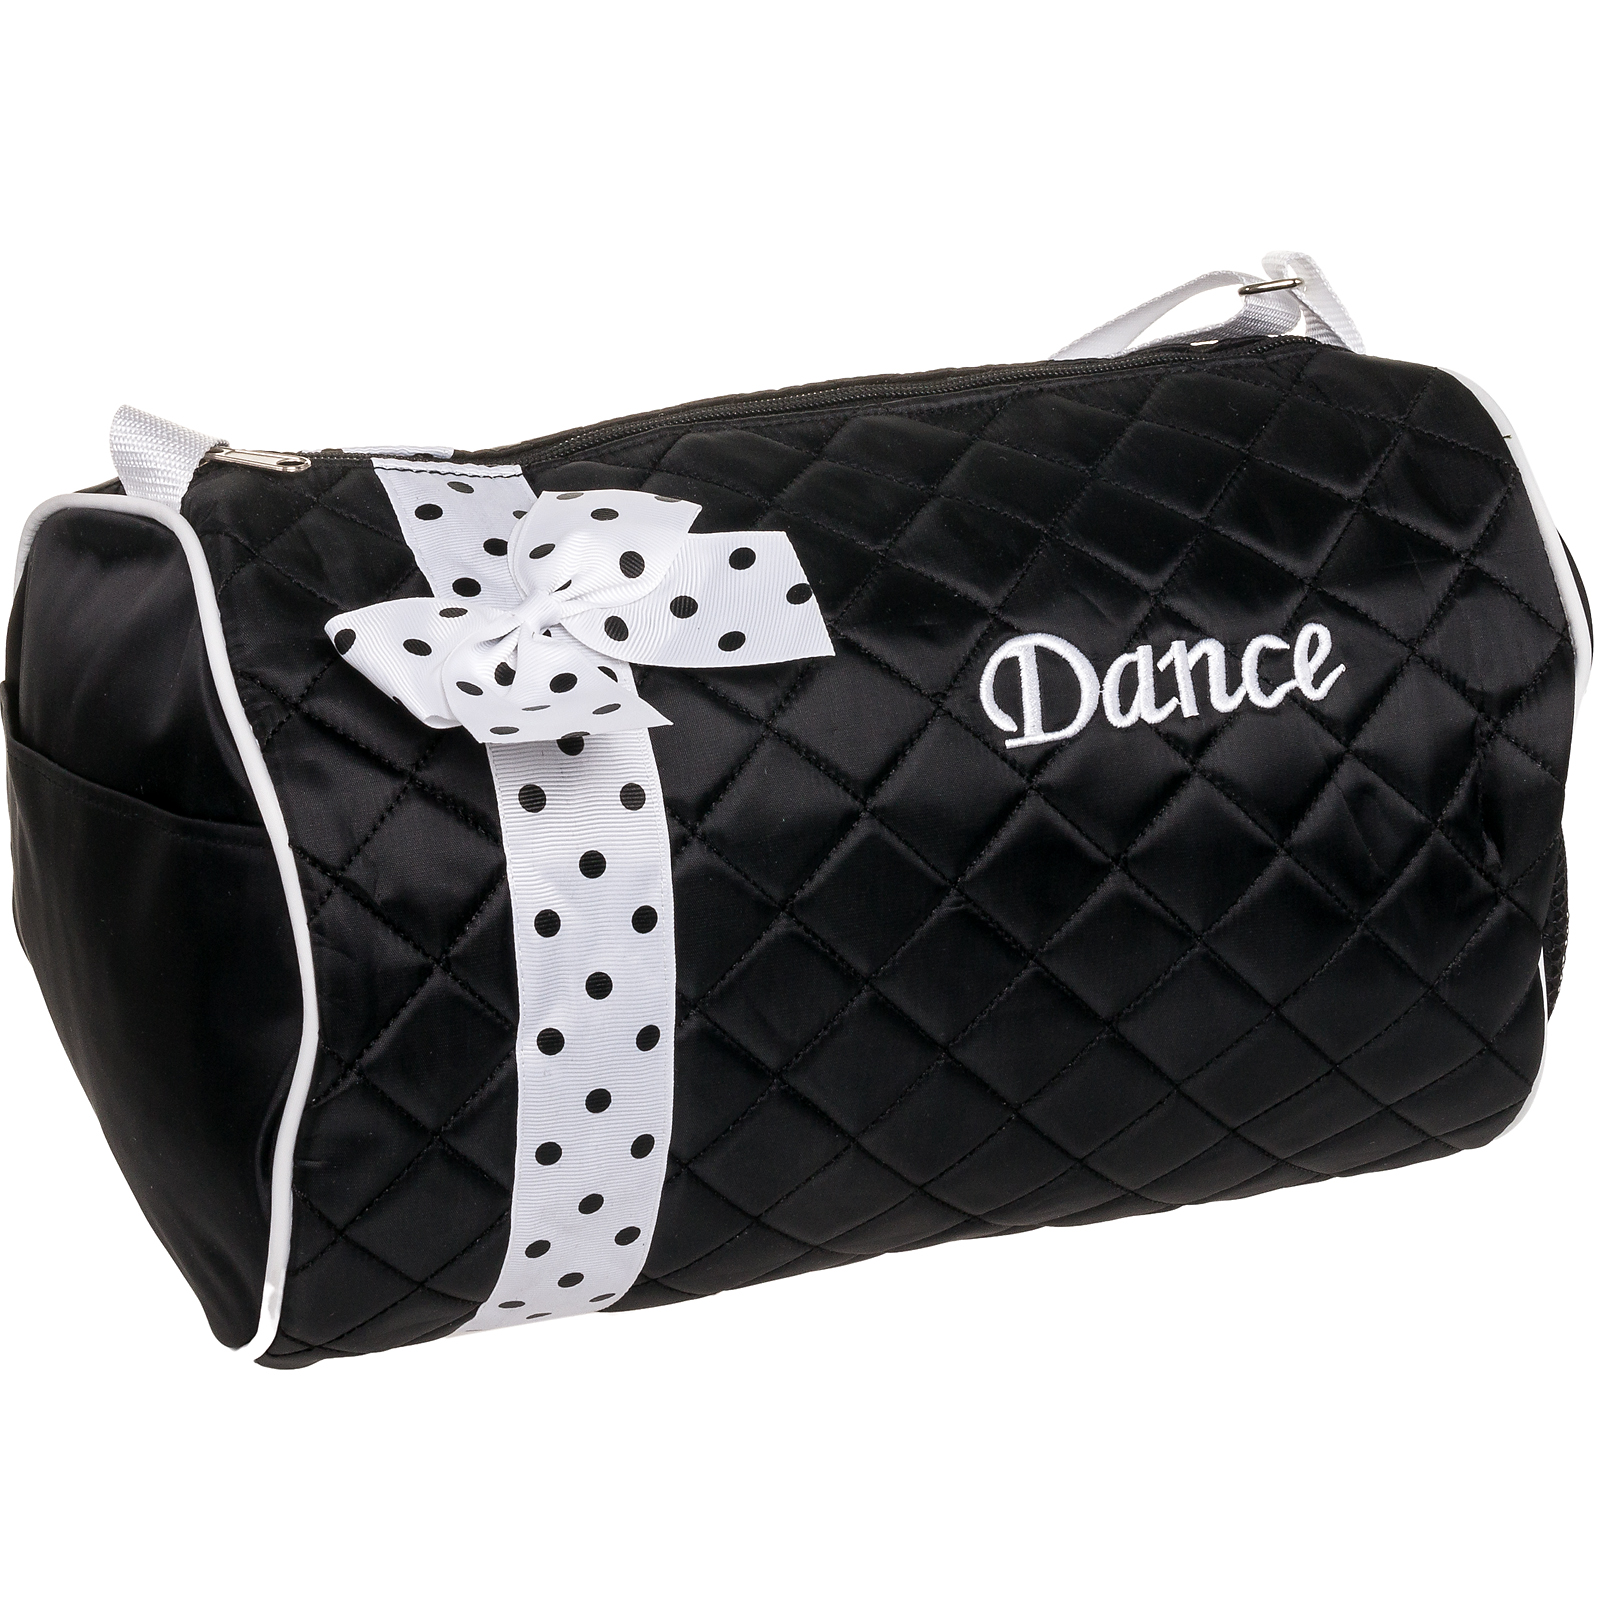 SILVER LILLY New Girl Dance Cheer Ballet Duffel Travel Gym Duffle Bag w  Bow NWT by Silver Lilly